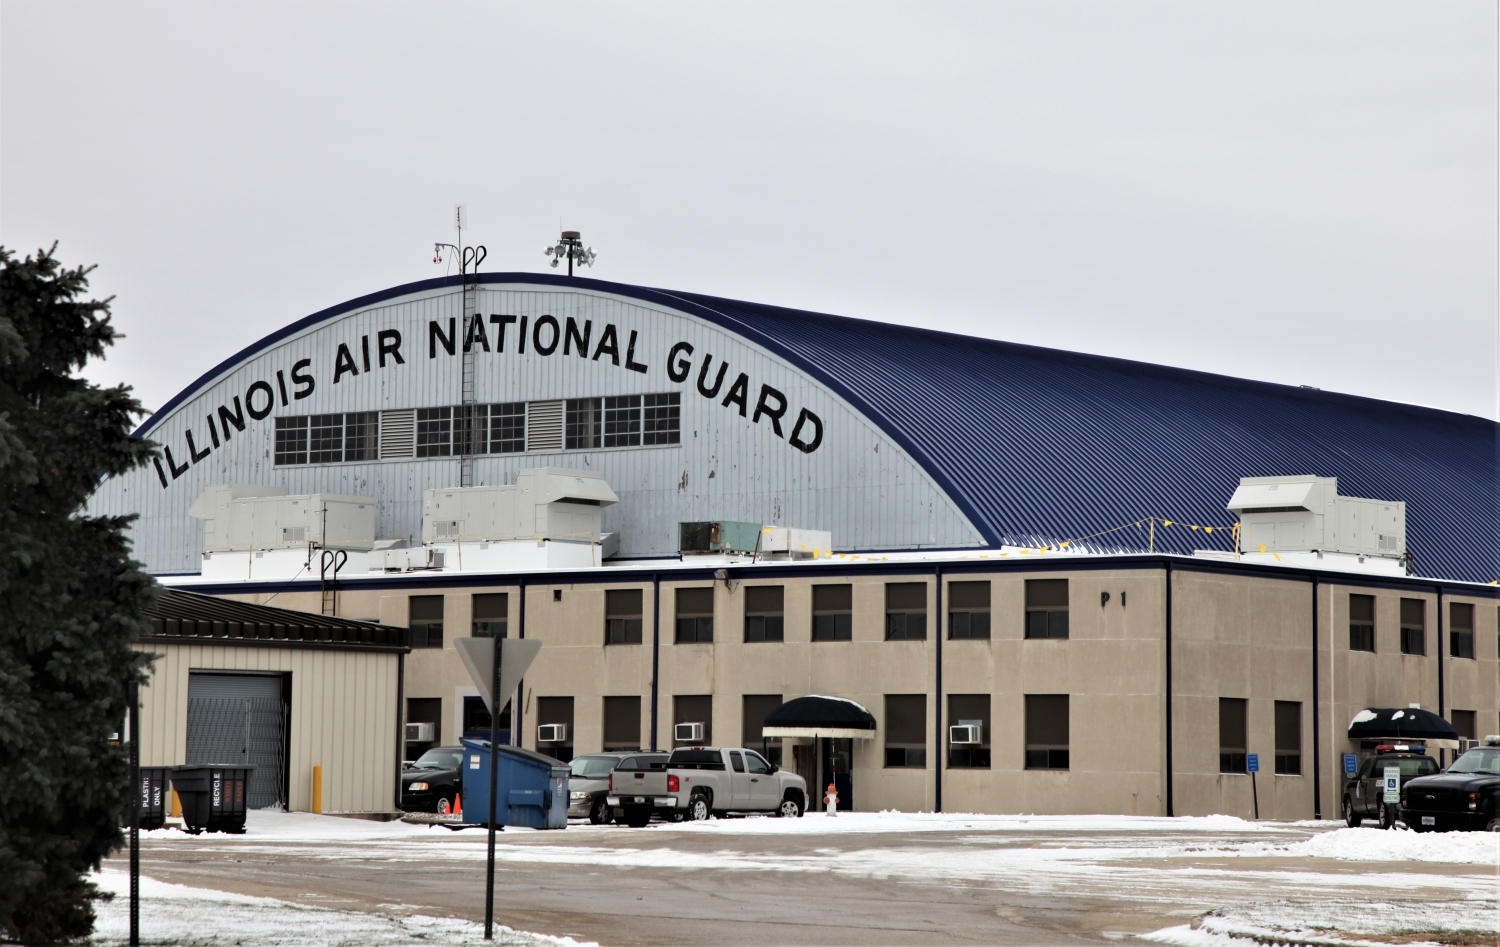 F-16 maintenance hangar facility